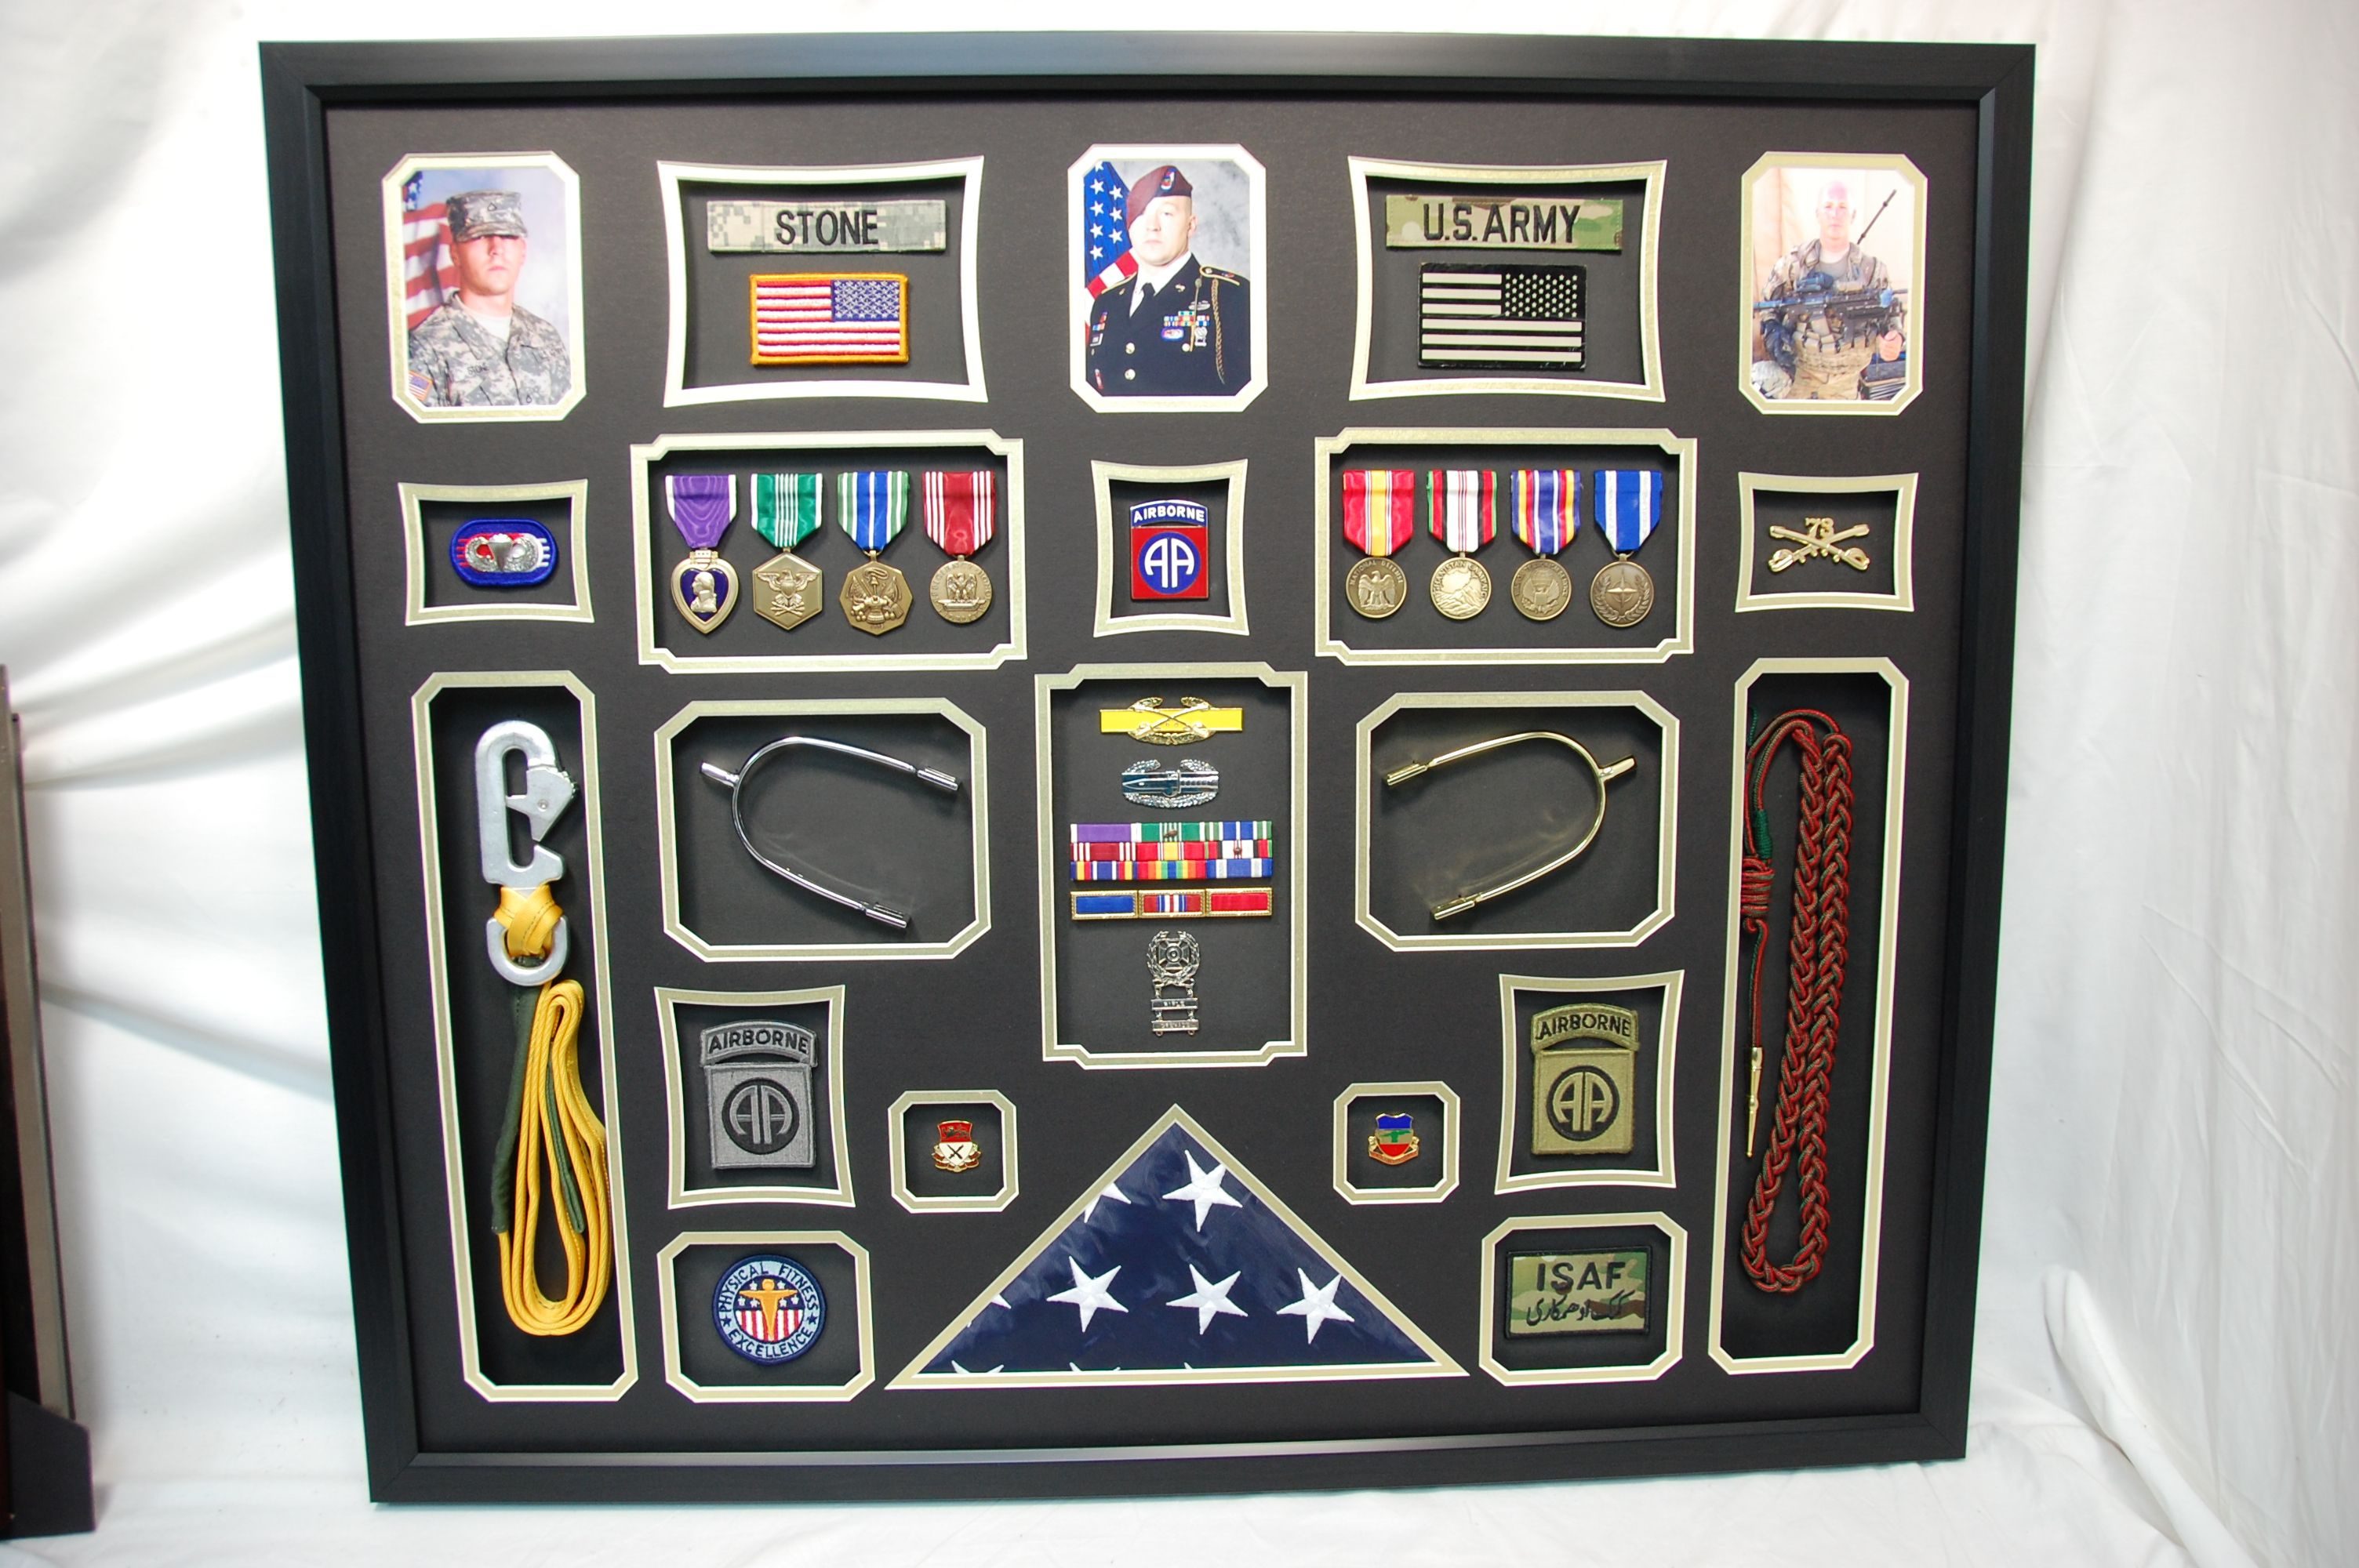 30 X 34 Us Army Cavalry Shadow Box We Mounted A Static Line And Boot Spurs Into This Custom Military Shadow B Military Shadow Box Shadow Box Military Gifts